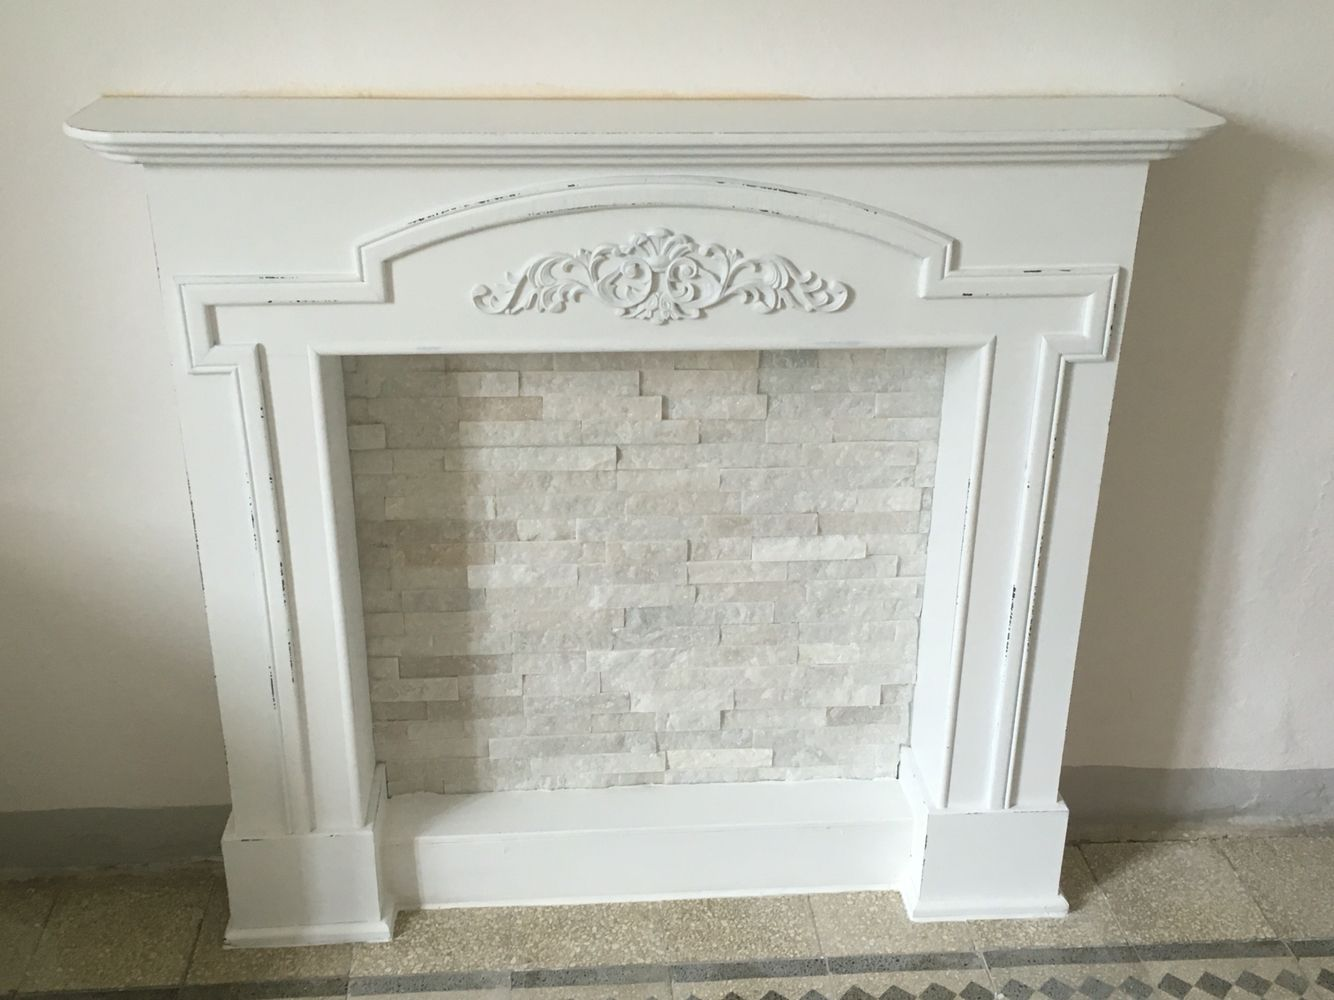 Camino Esterni Fai Da Te : Finto caminetto in stile shabby fai da te fireplace in